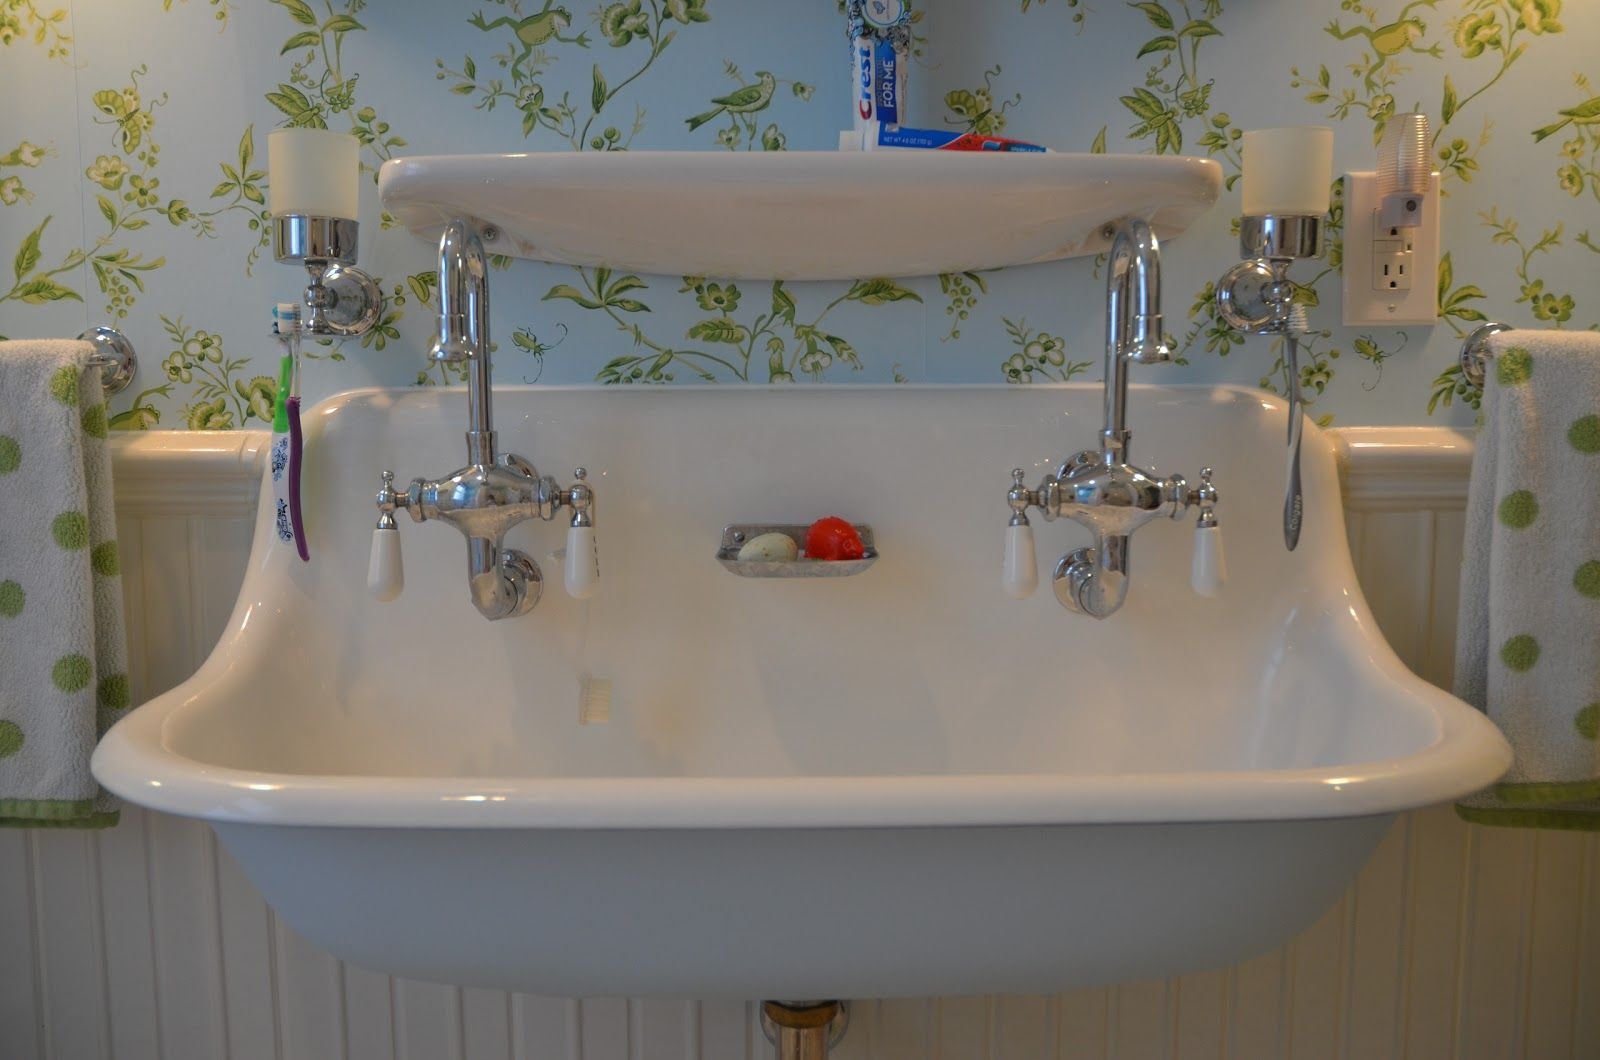 Beautiful Great Sink For Either Master Bath Or Pool Bath. | Bathrooms pertaining to Antique Bathroom Sinks